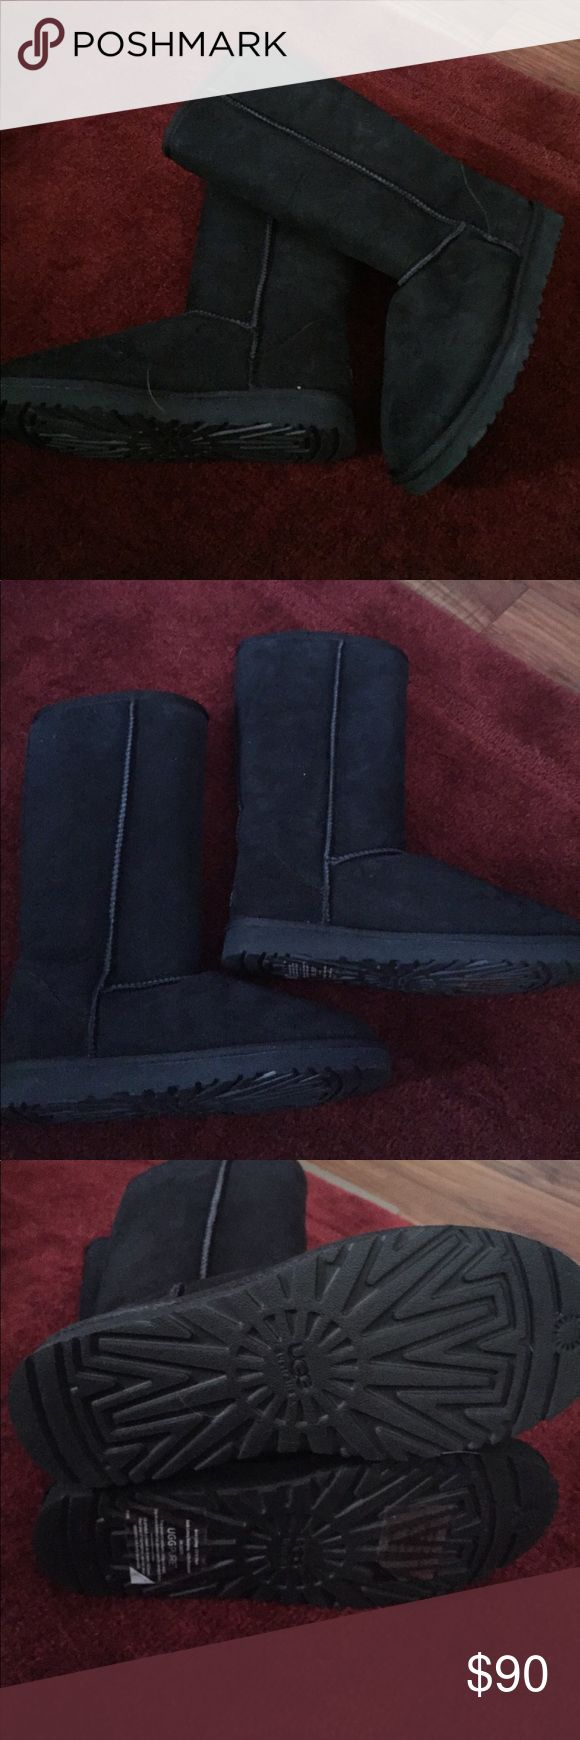 NEW UGG TALL CLASSIC BOOTS SZ 8 Black NEW BUT WAS A DISPLAY. UGG CLASSIC TALL BOOTS SIZE 8 BLACK WITH BLACK SHEARLING INSIDE UGG Shoes Winter & Rain Boots